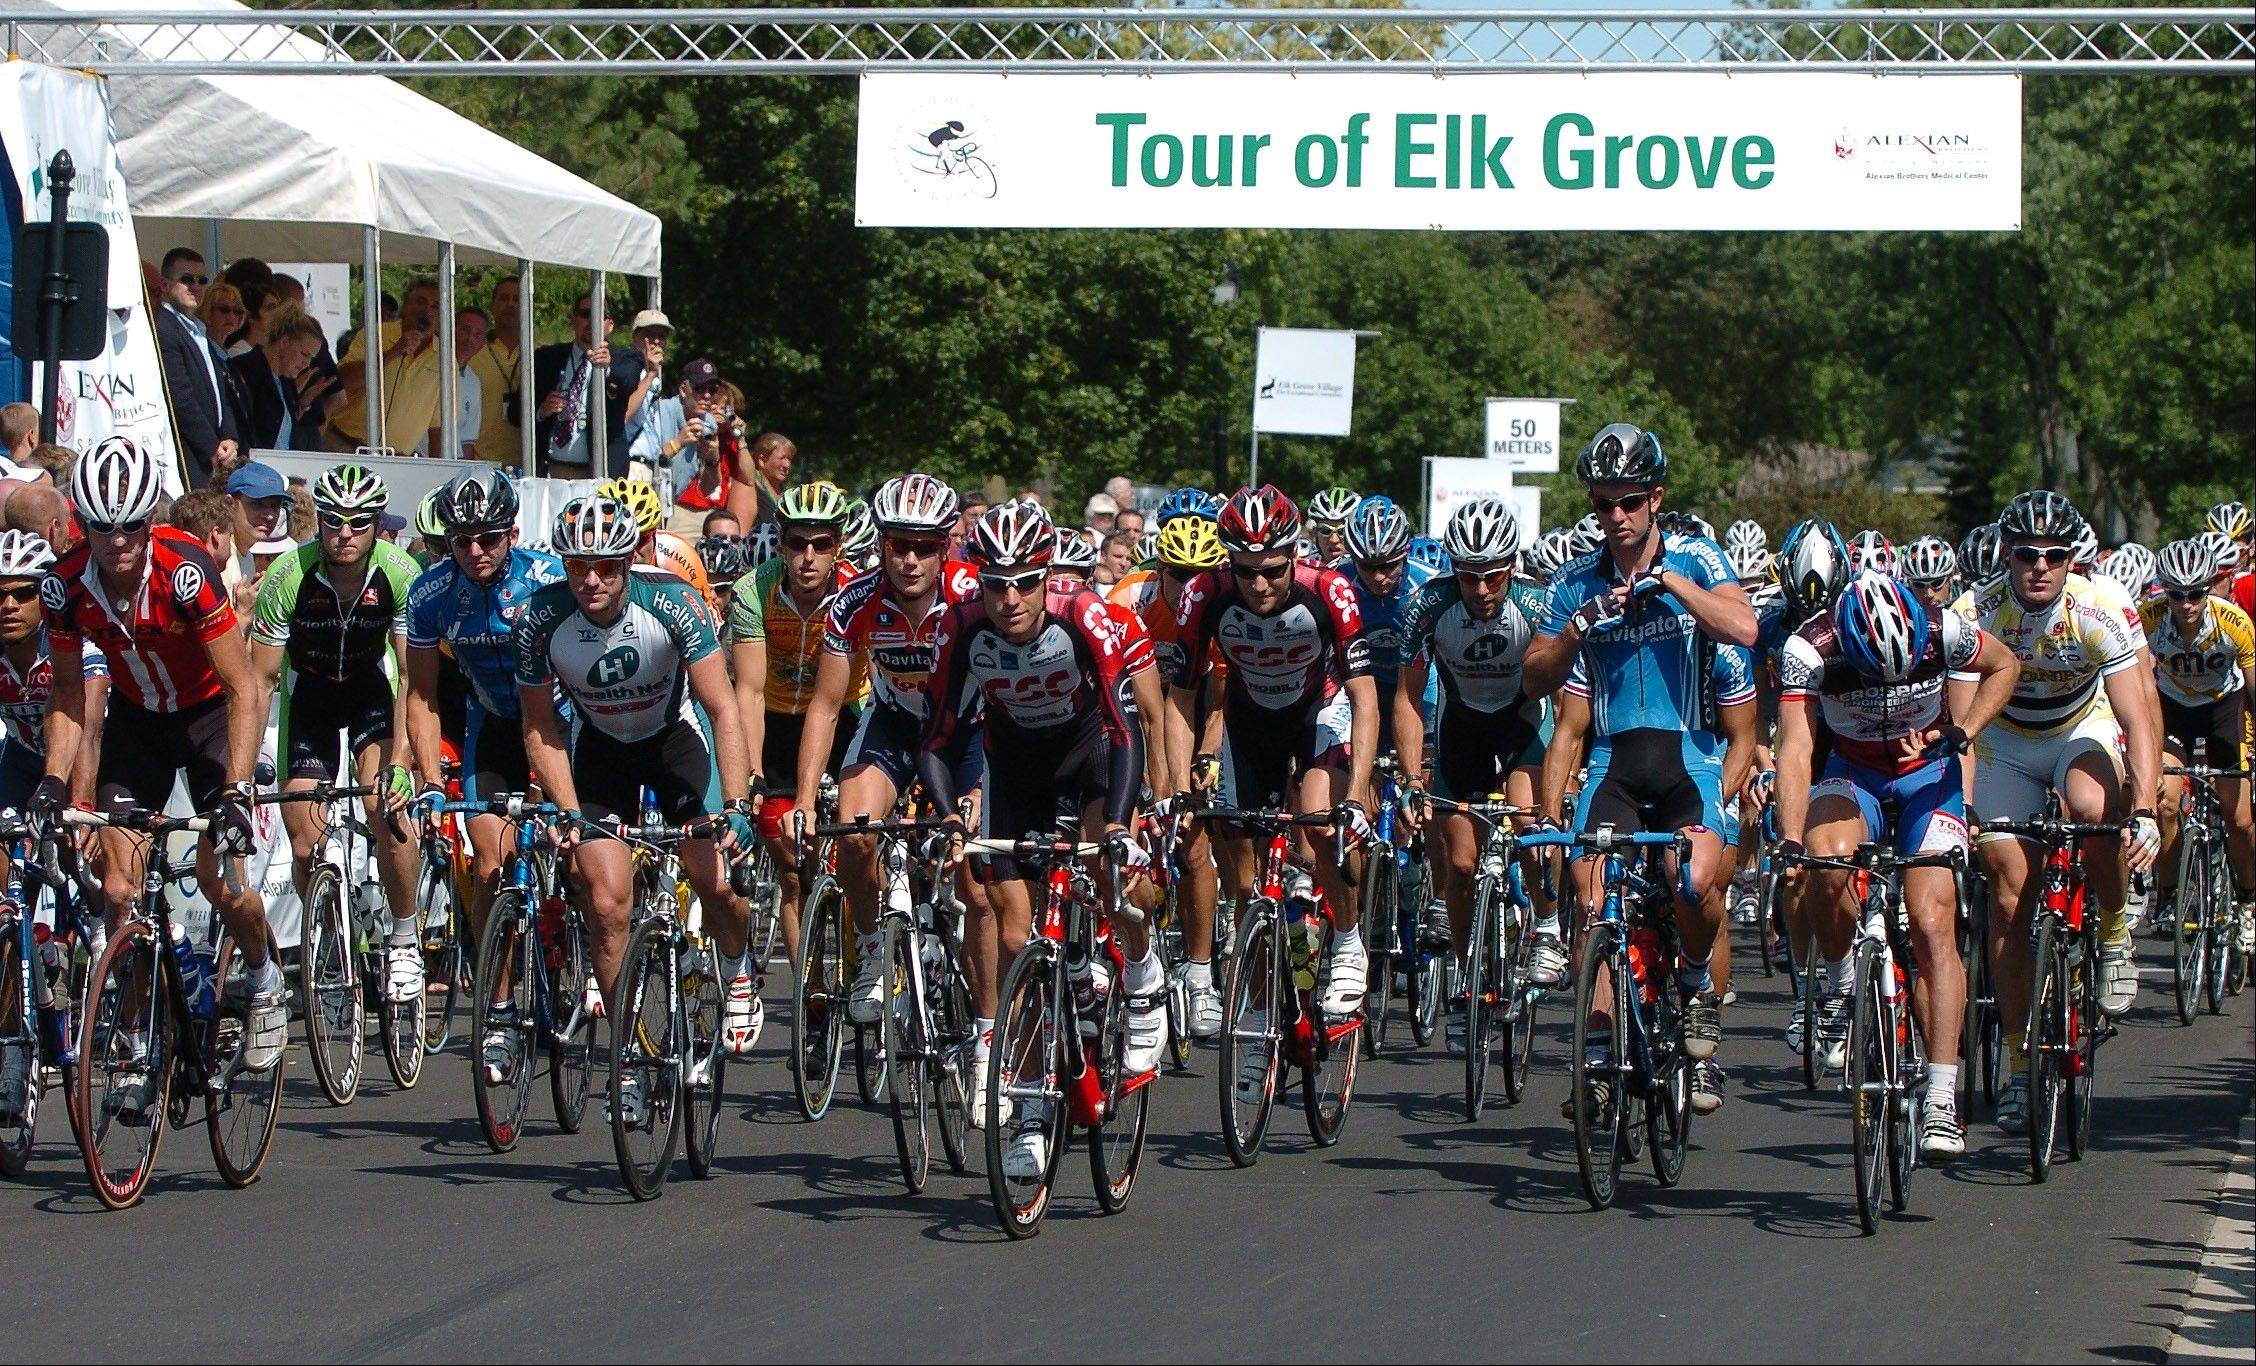 Elk Grove mayor: Why must we move our bike race?